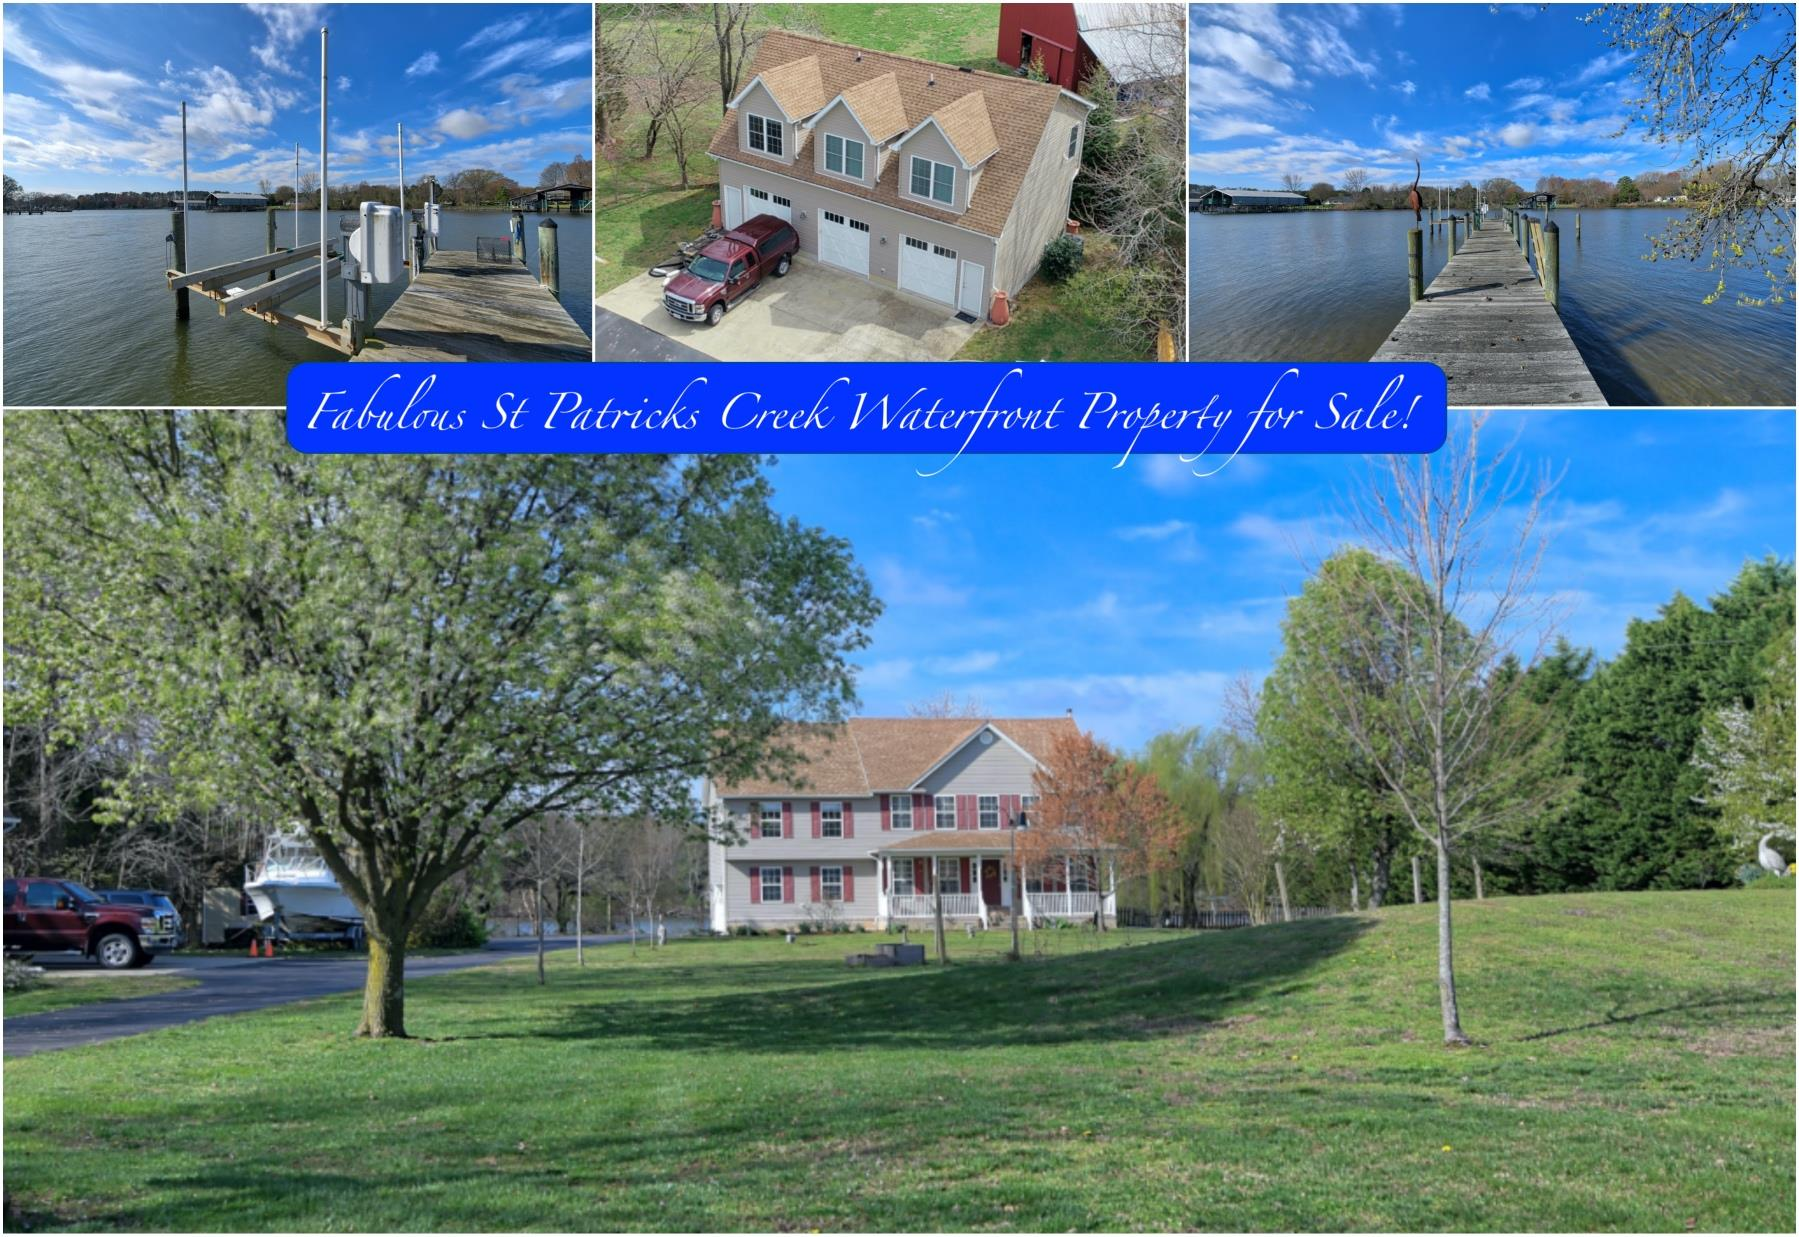 20955 Oakland Hall Road / Avenue MD / St Marys County Waterfront / Southern Maryland Waterfront Property for Sale!